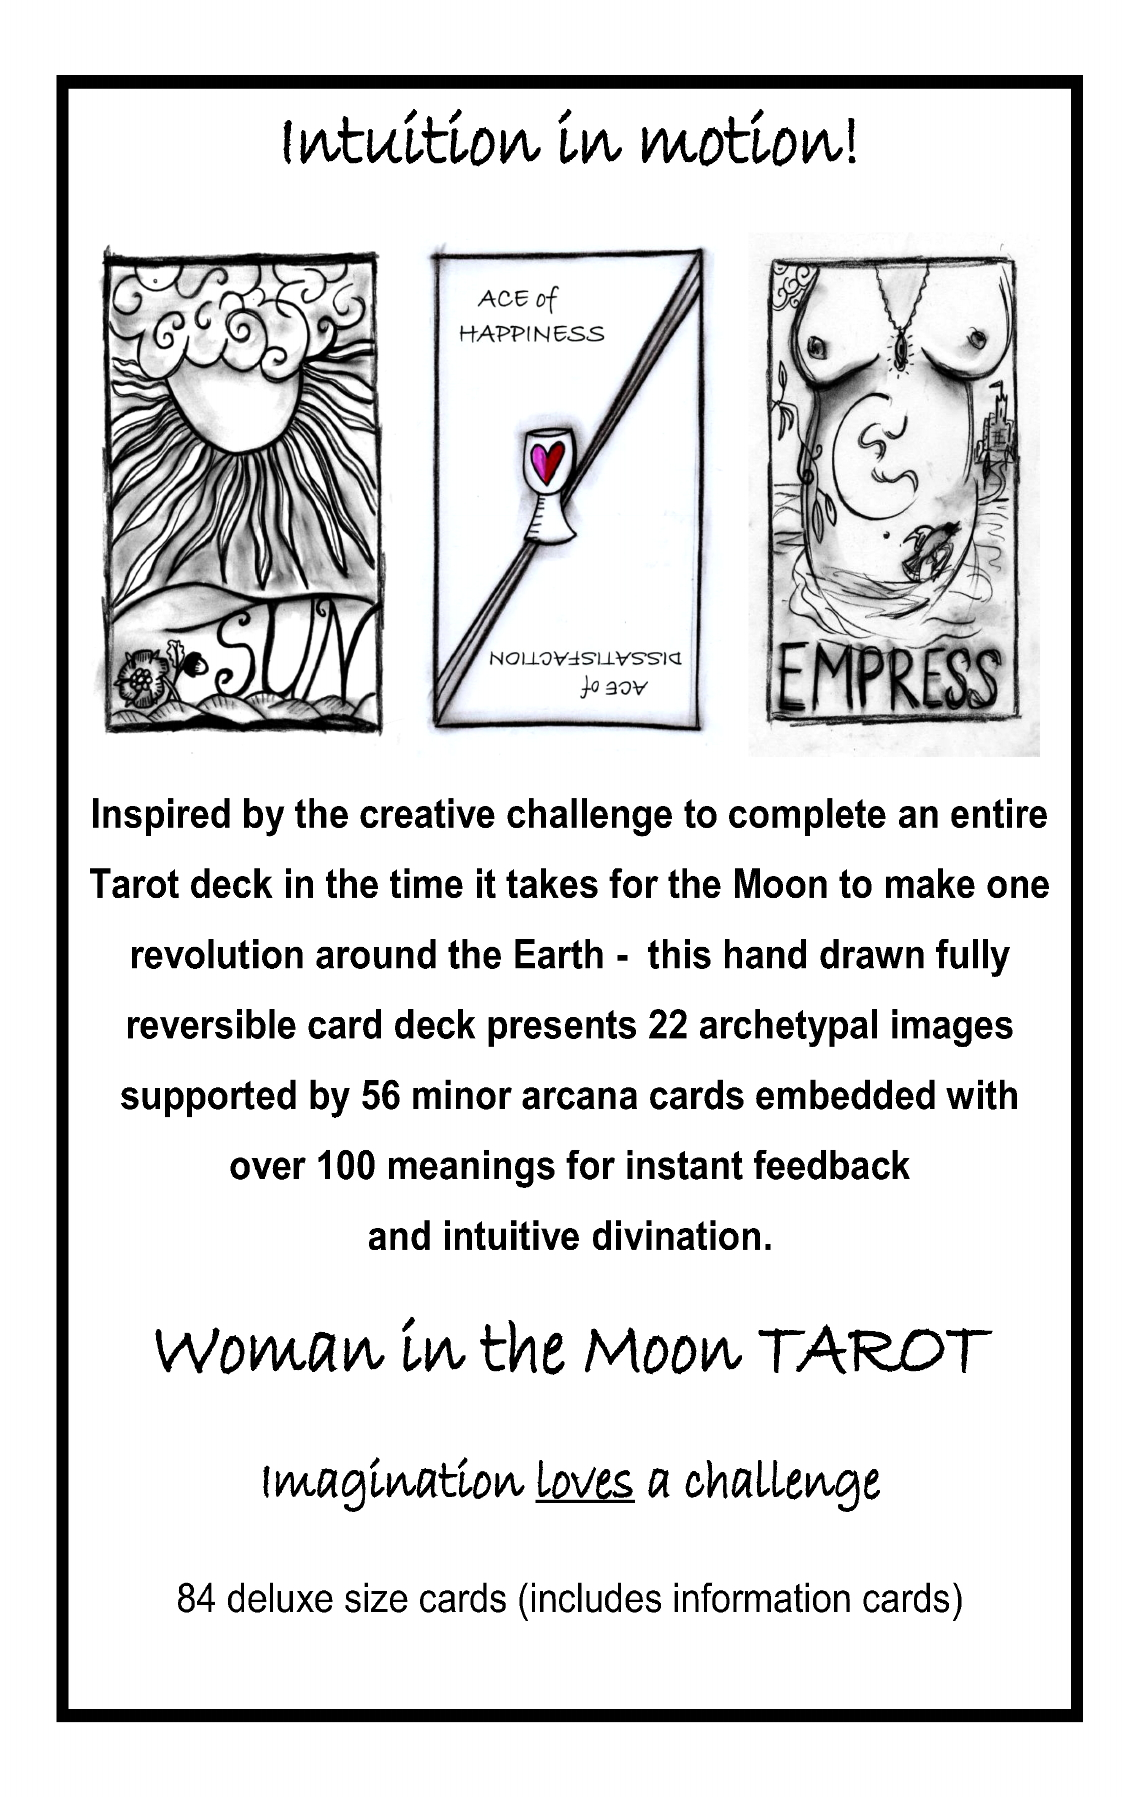 Angela Dicker's Woman in the Moon TAROT